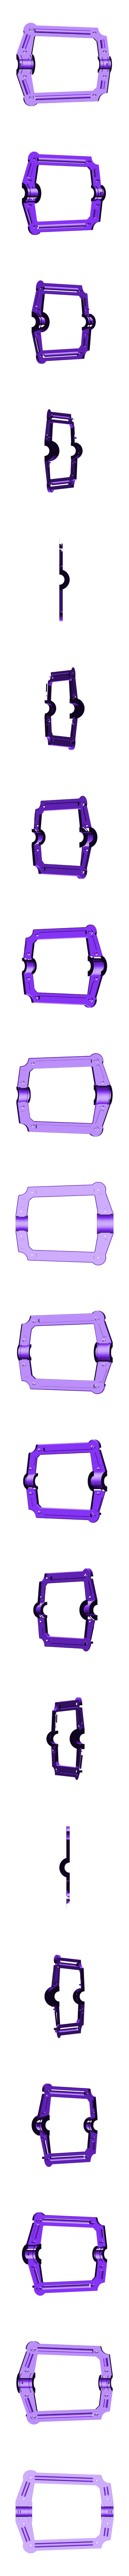 guard-a-smaller.stl Download free STL file Yet Another Keyblade • Object to 3D print, Adafruit